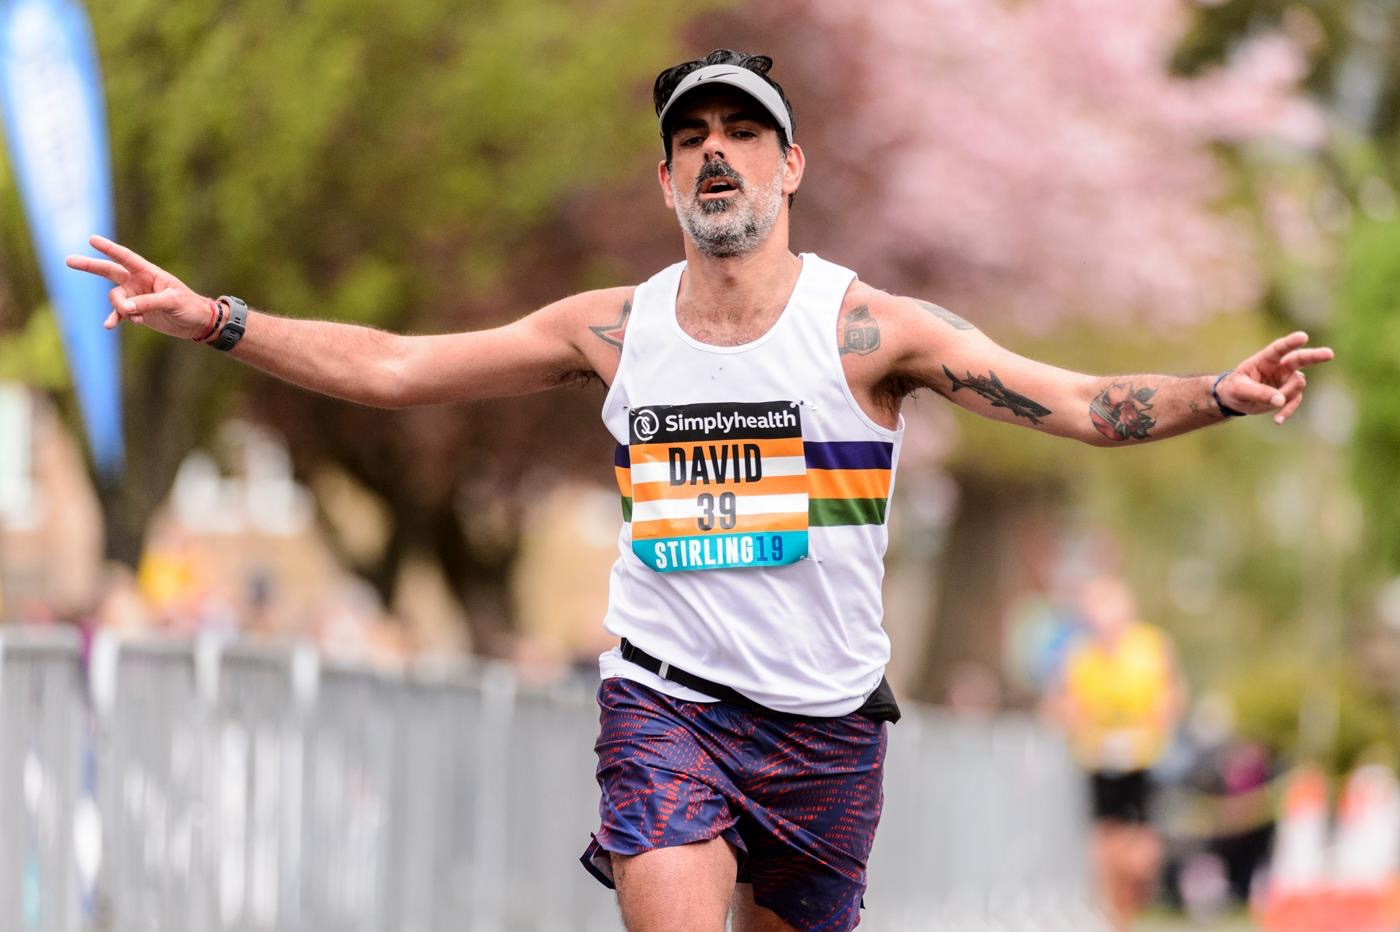 David Dalmau @ Stirling Marathon, April 28th 2019 (C) Bobby Gavin